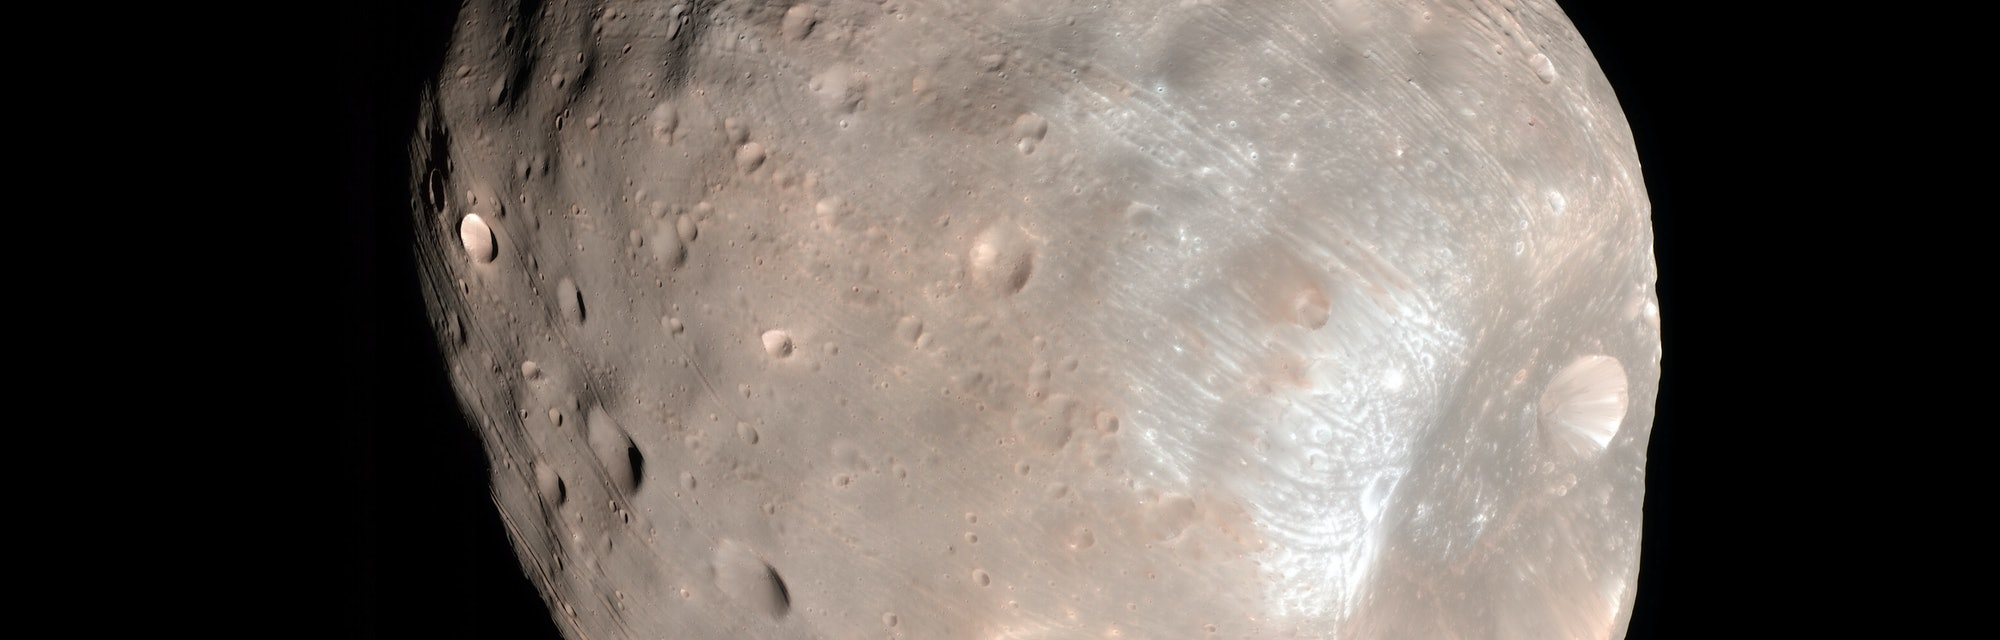 Enhanced-color image of Phobos from the Mars Reconnaissance Orbiter with Stickney crater on the righ...